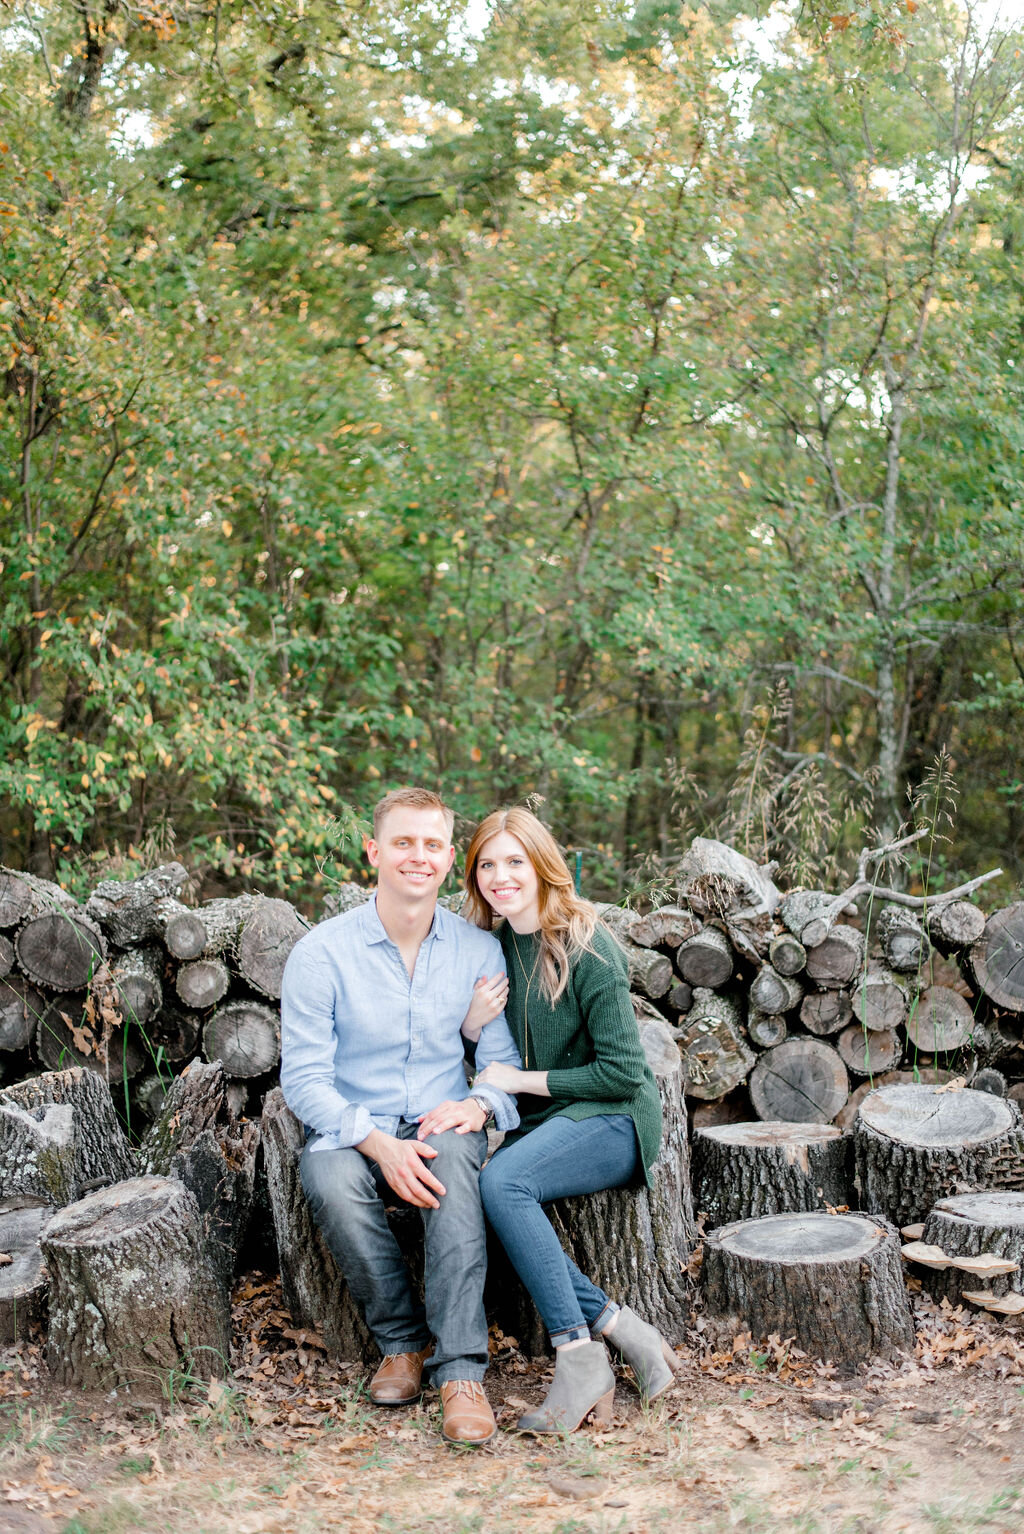 Kelsey + Artem's Autumn Engagement Session at The Grove - Aubrey, Texas | Gray Door Photography